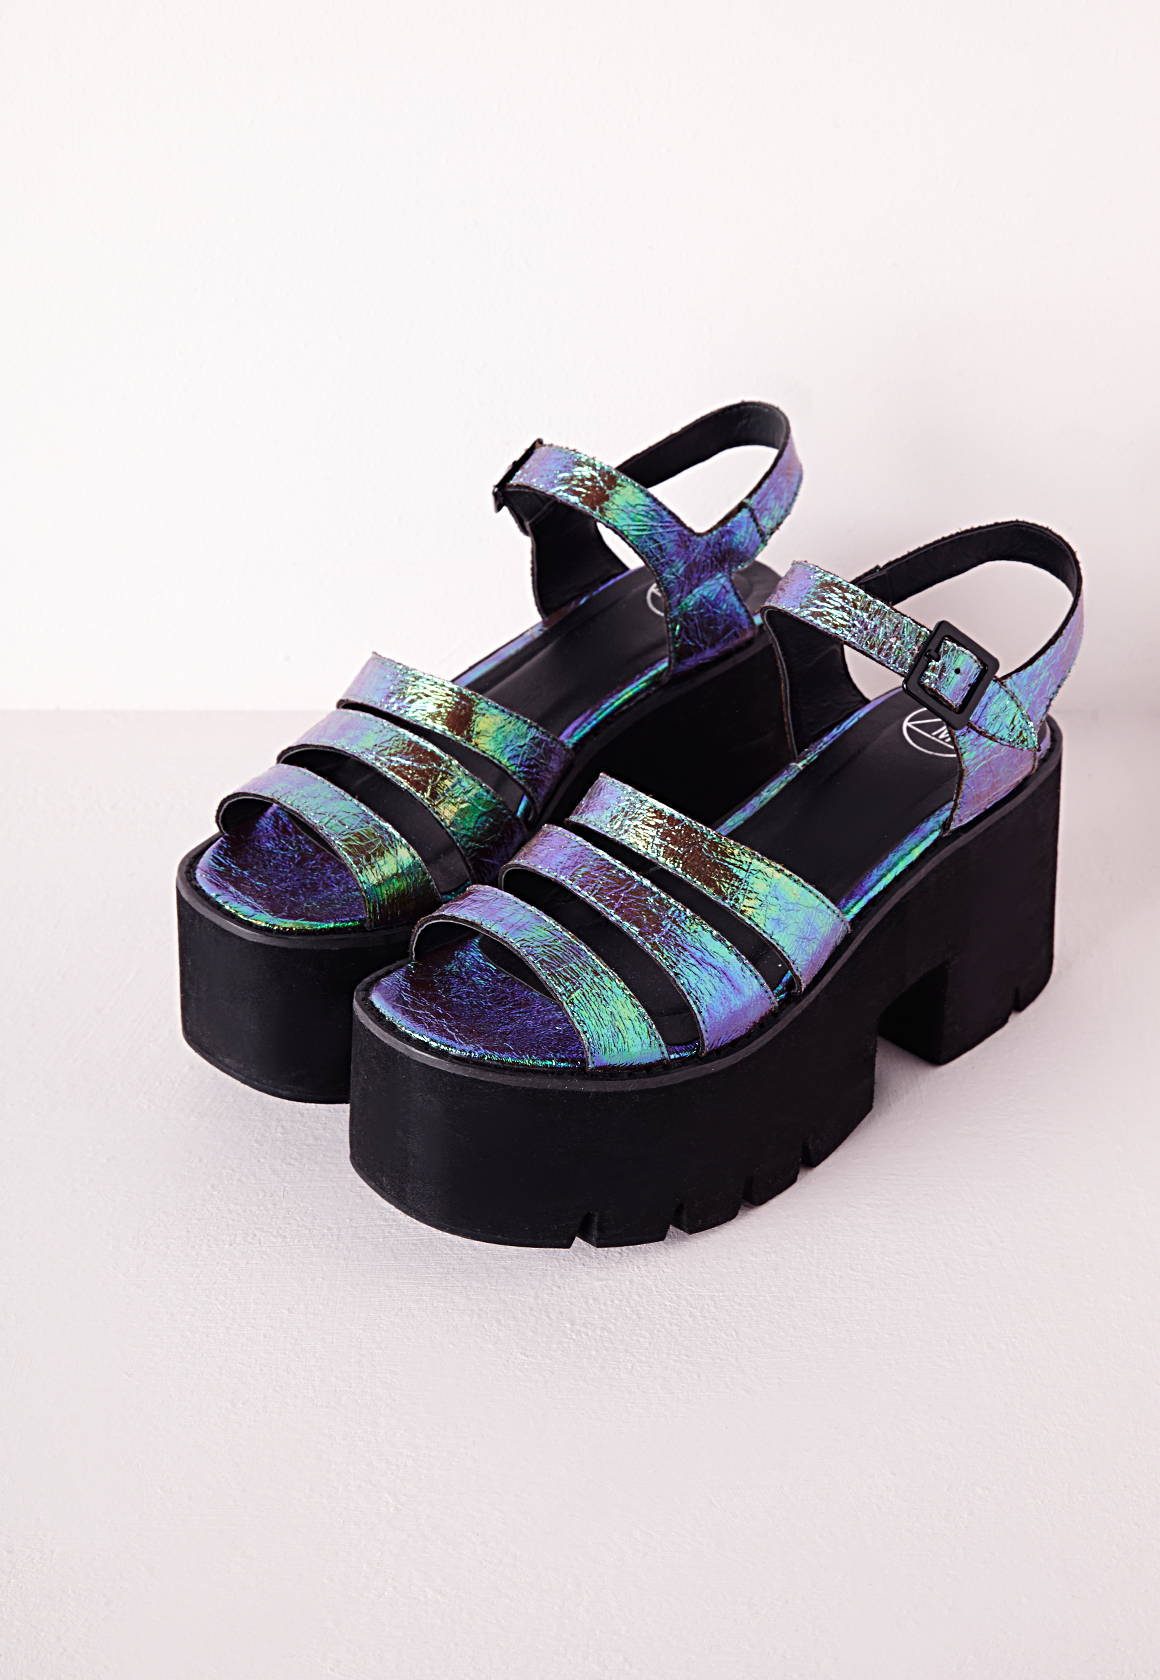 6ed3afa590b Lyst - Missguided Cleated Chunky Flatform Sandals Iridescent Teal in ...